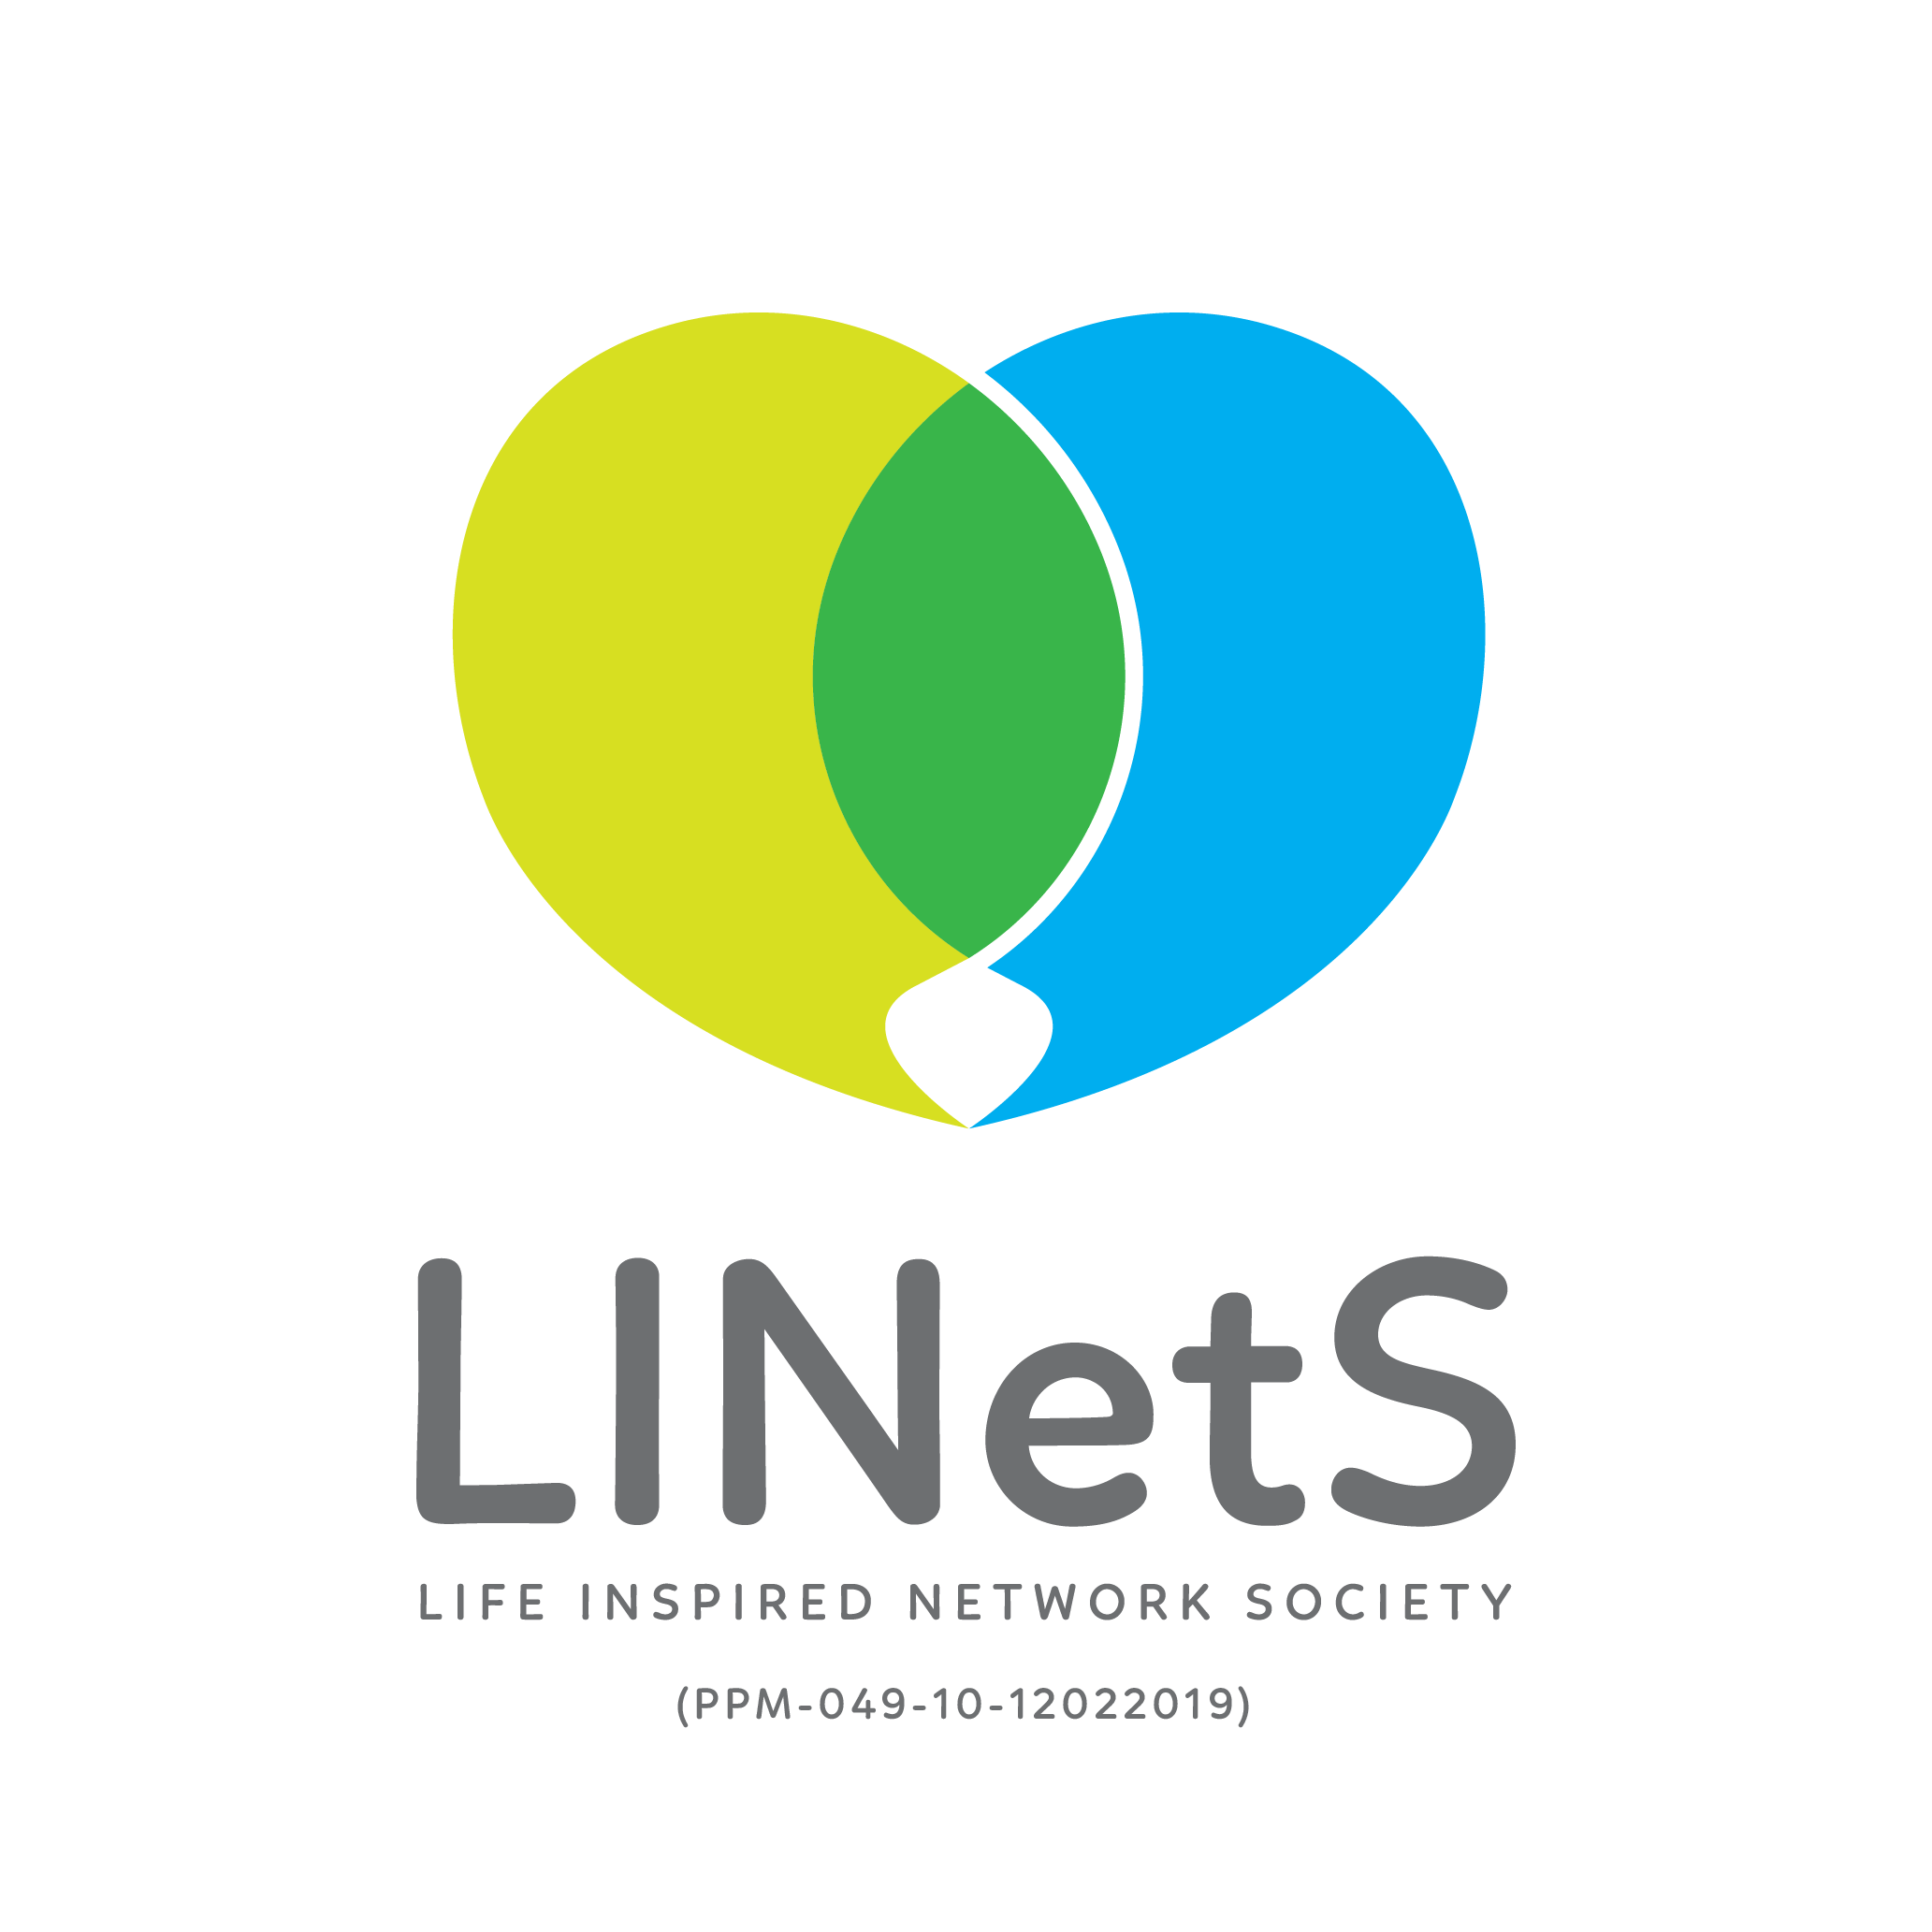 Life Inspired Network Society (LINetS)